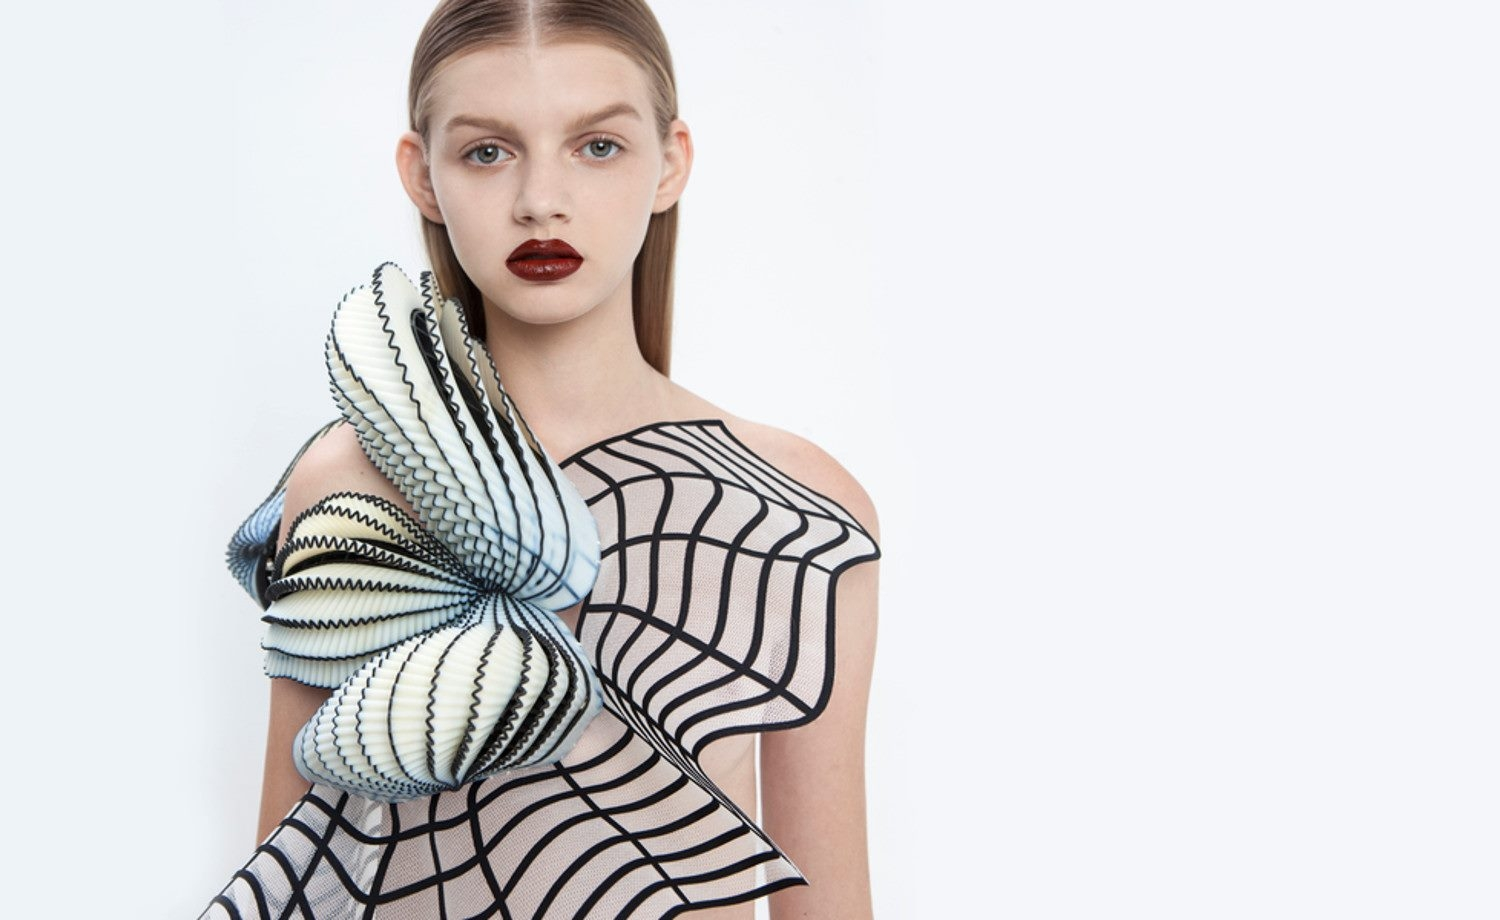 The Fashion Designer Who 3-D Prints Her Designs